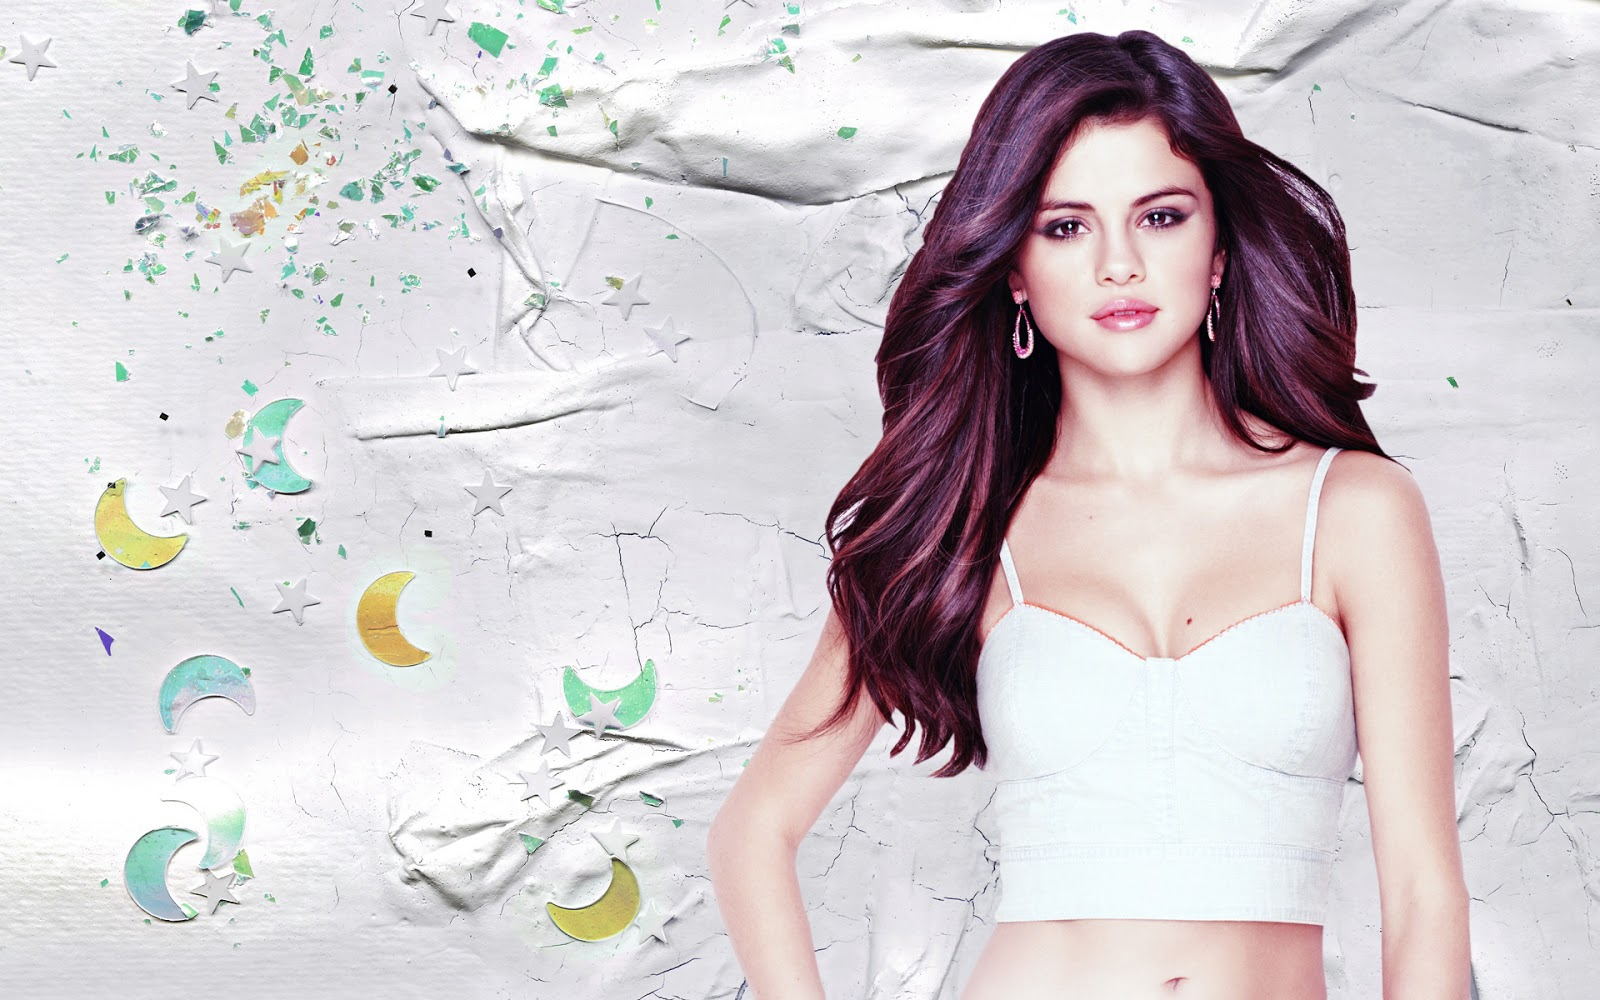 HD Wallpapers: Selena Gomez HD Wallpapers